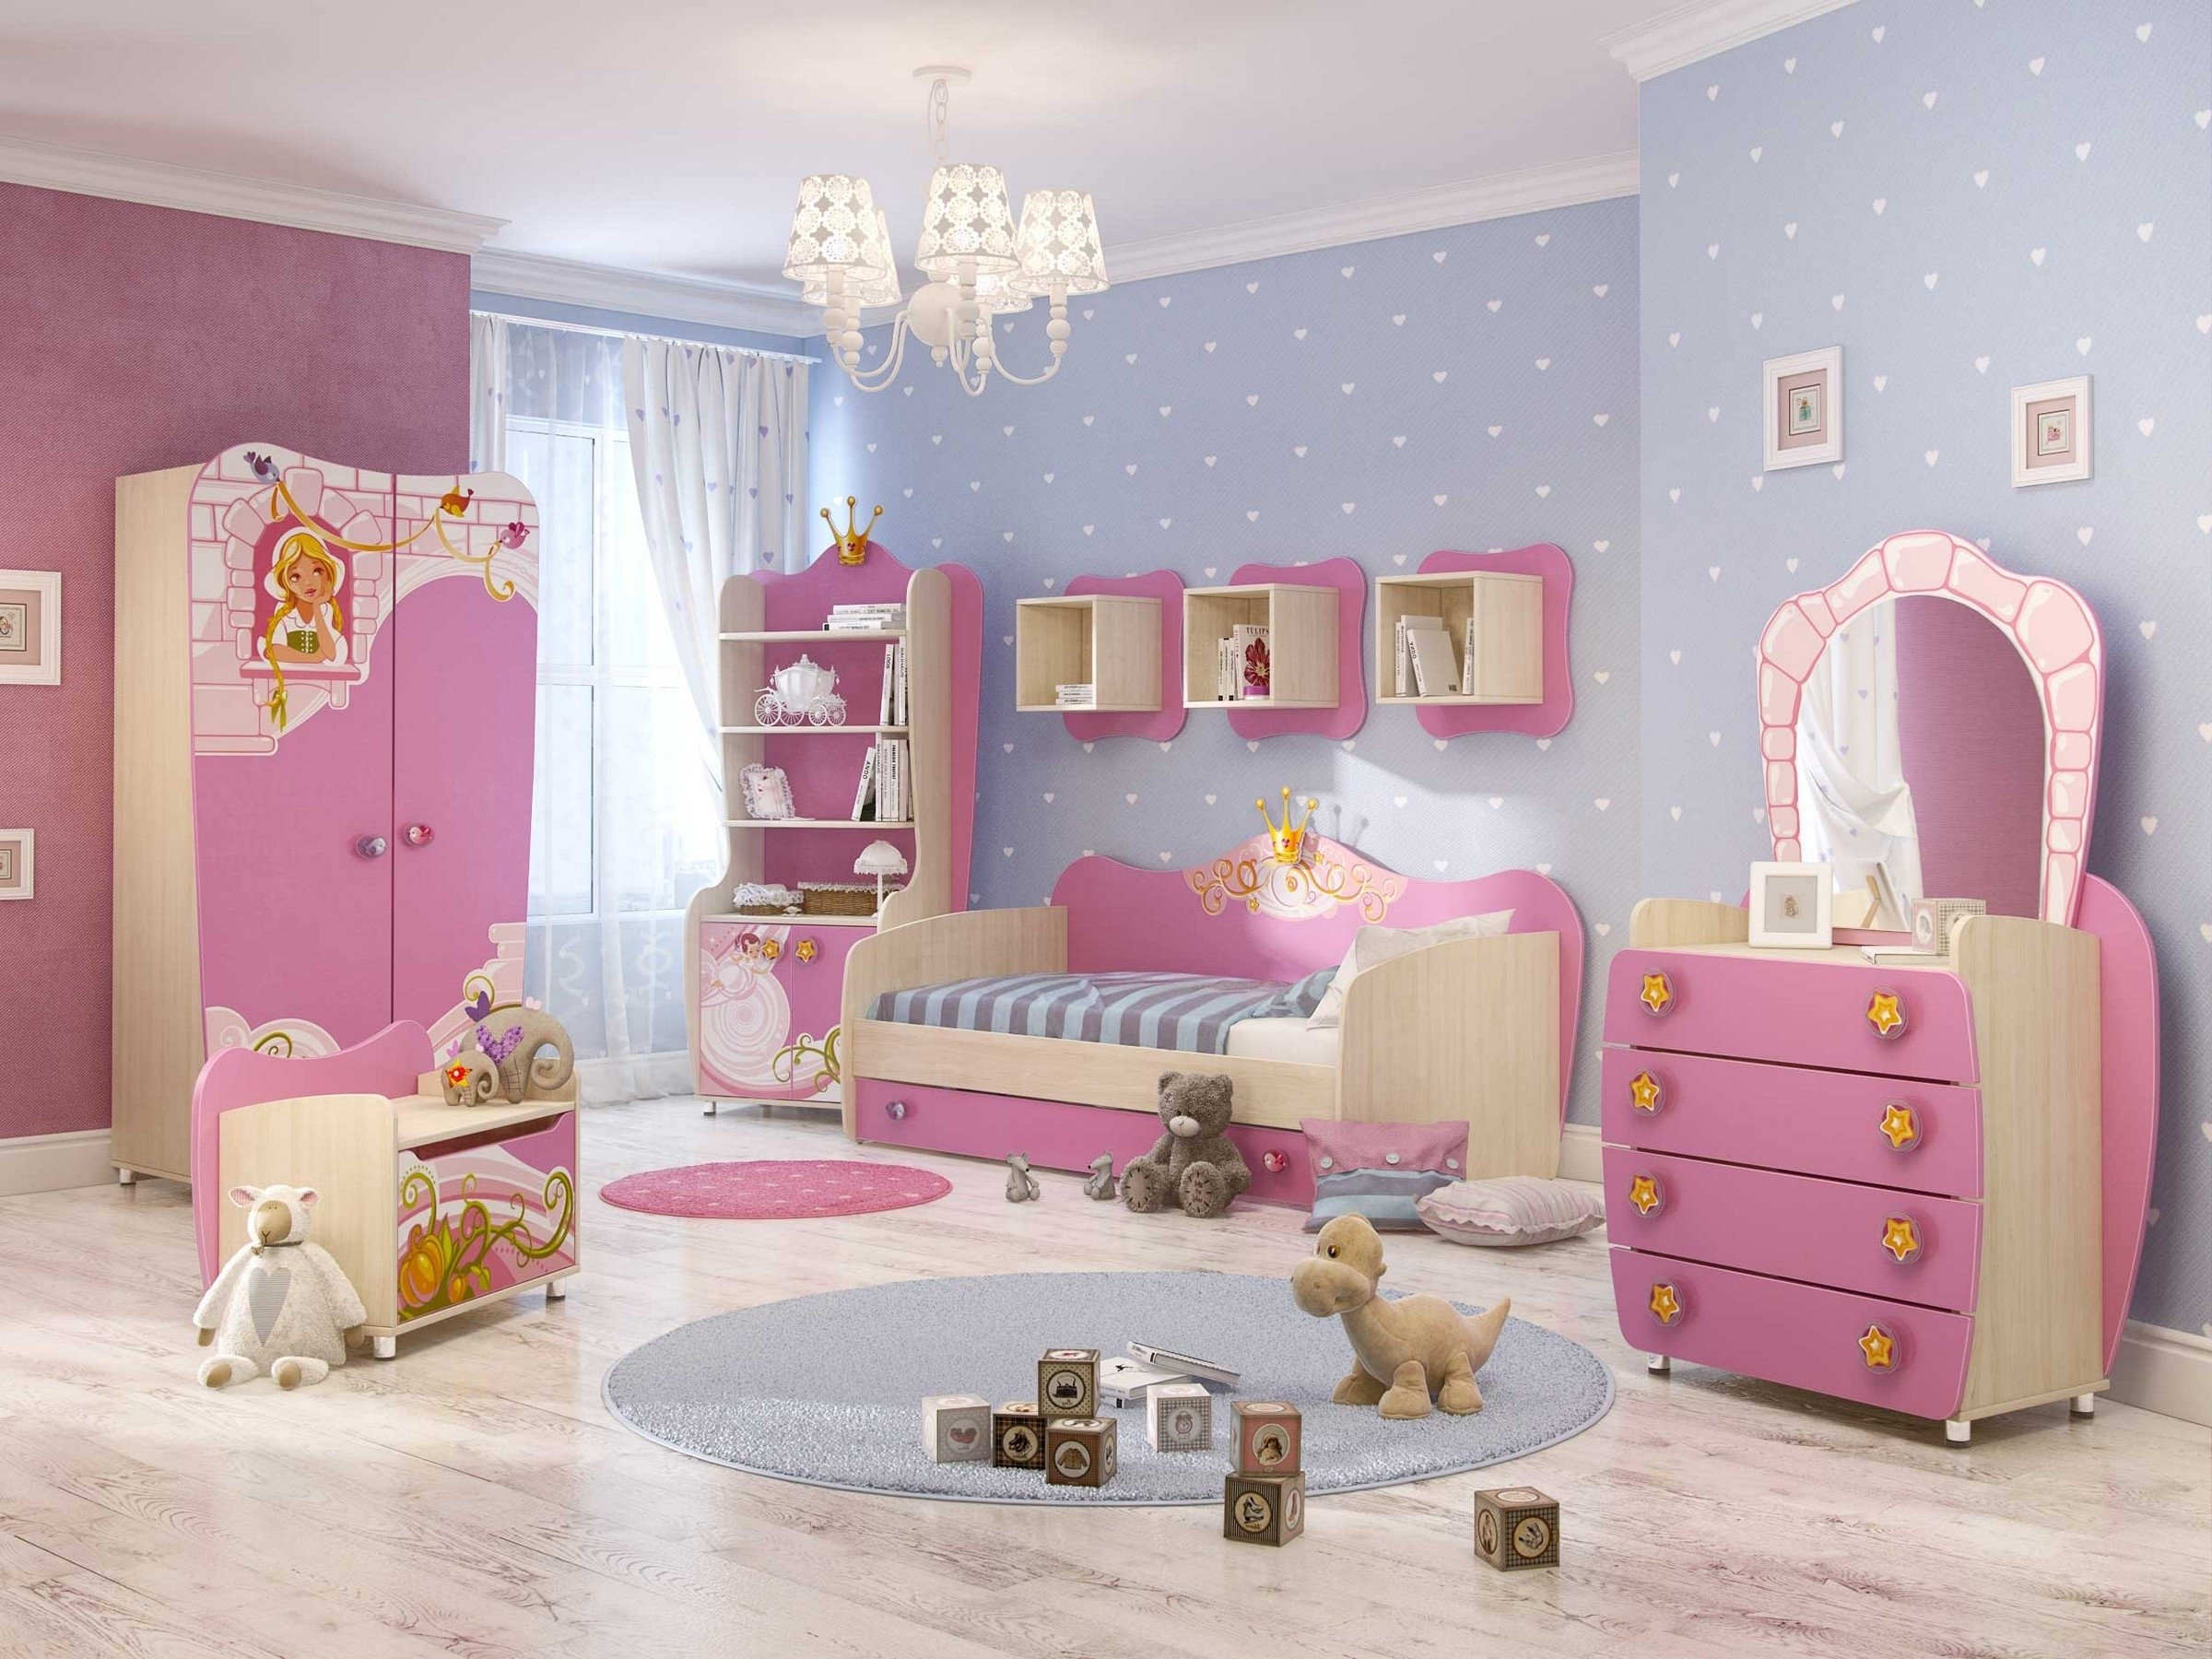 10 Wonderful Painting Ideas For Girls Room teenage girl bedroom ideas for big rooms designs with painting ideas